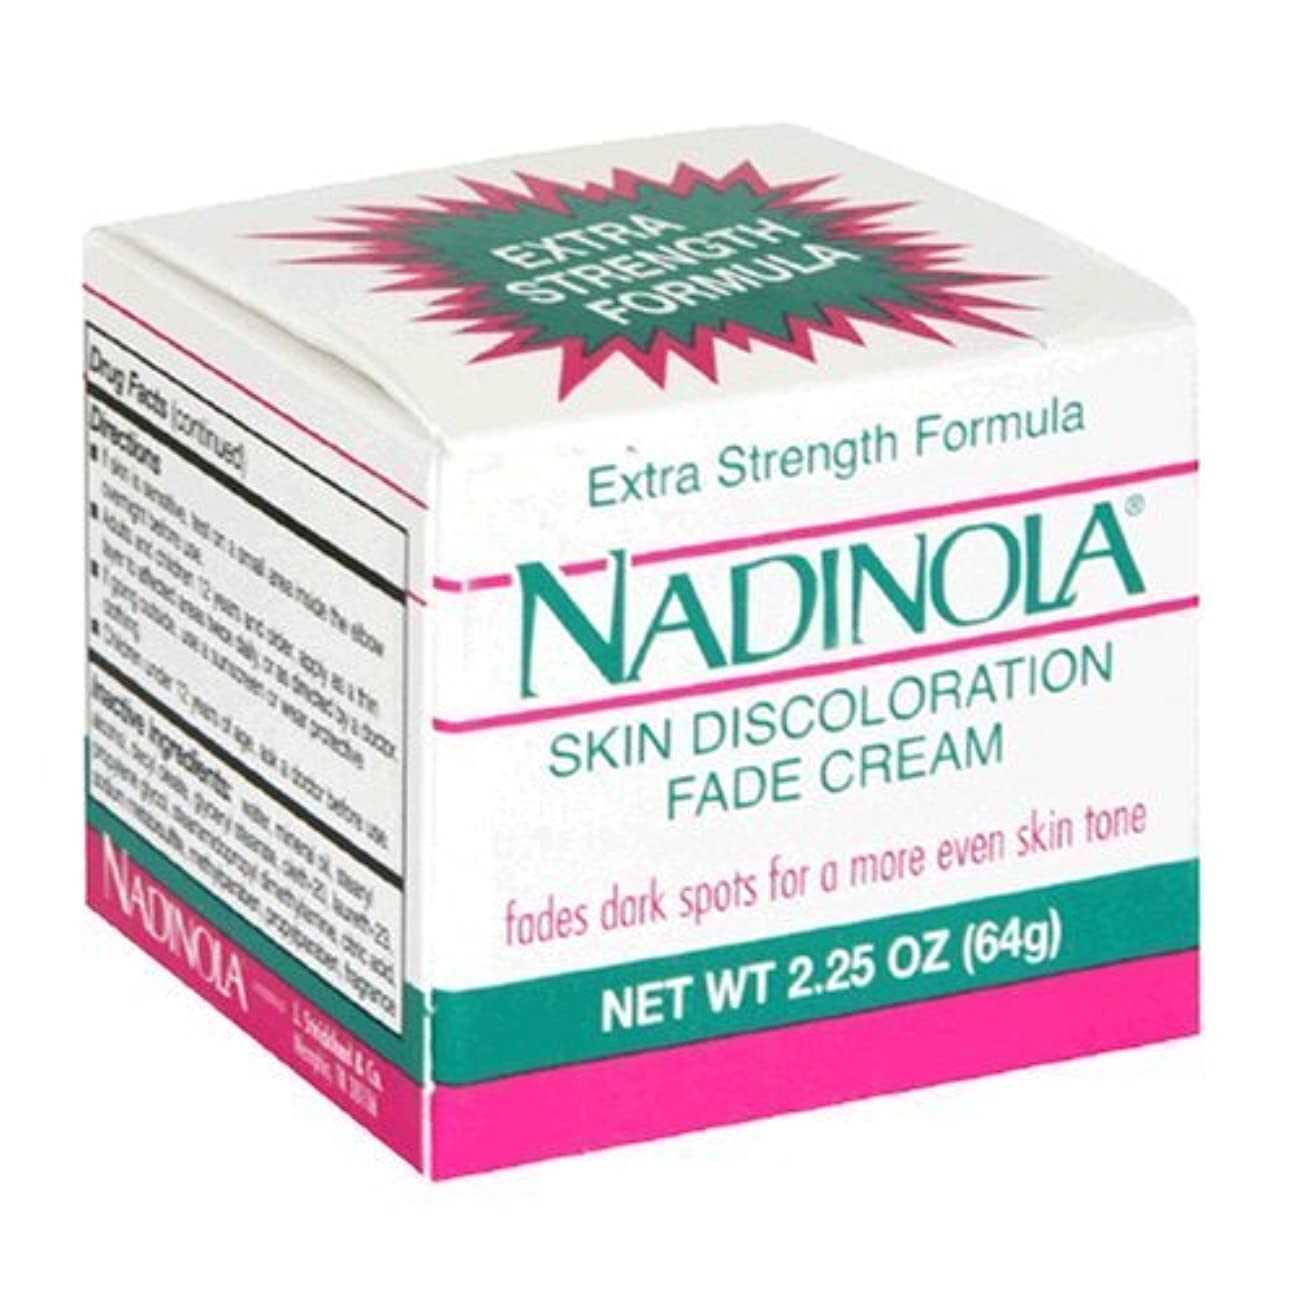 合金暴露寄生虫Nadinola Discoloration Fade Cream 2.25oz Extra Strength (並行輸入品)